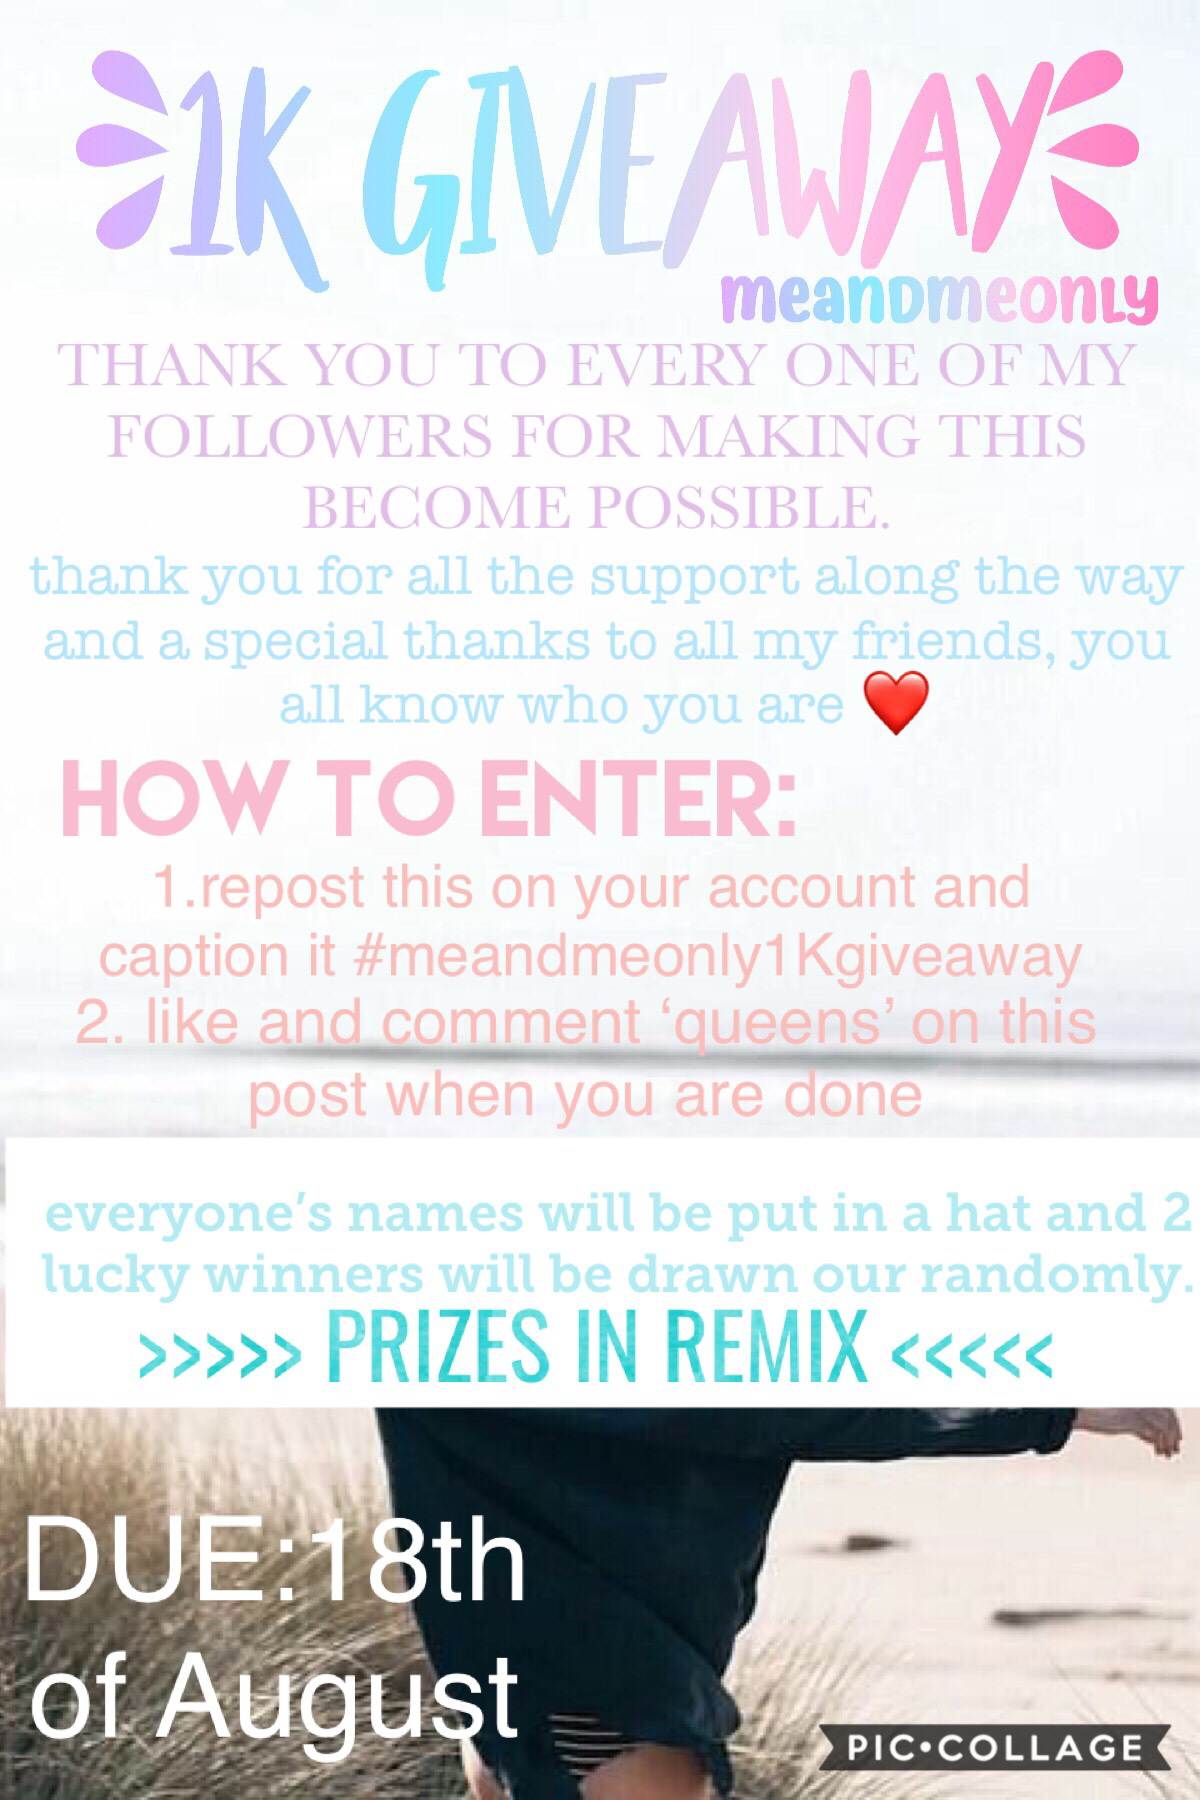 1K giveaway contest!! THANK YOU SO SO MUCH FOR 1K EVERYONE! I love all my followers, this made my day so i decided to do a giveaway to give back to y'all. please enter, there are such great prizes, prizes in remix btw. THANKS AGAIN❤️❤️ I can't even believ